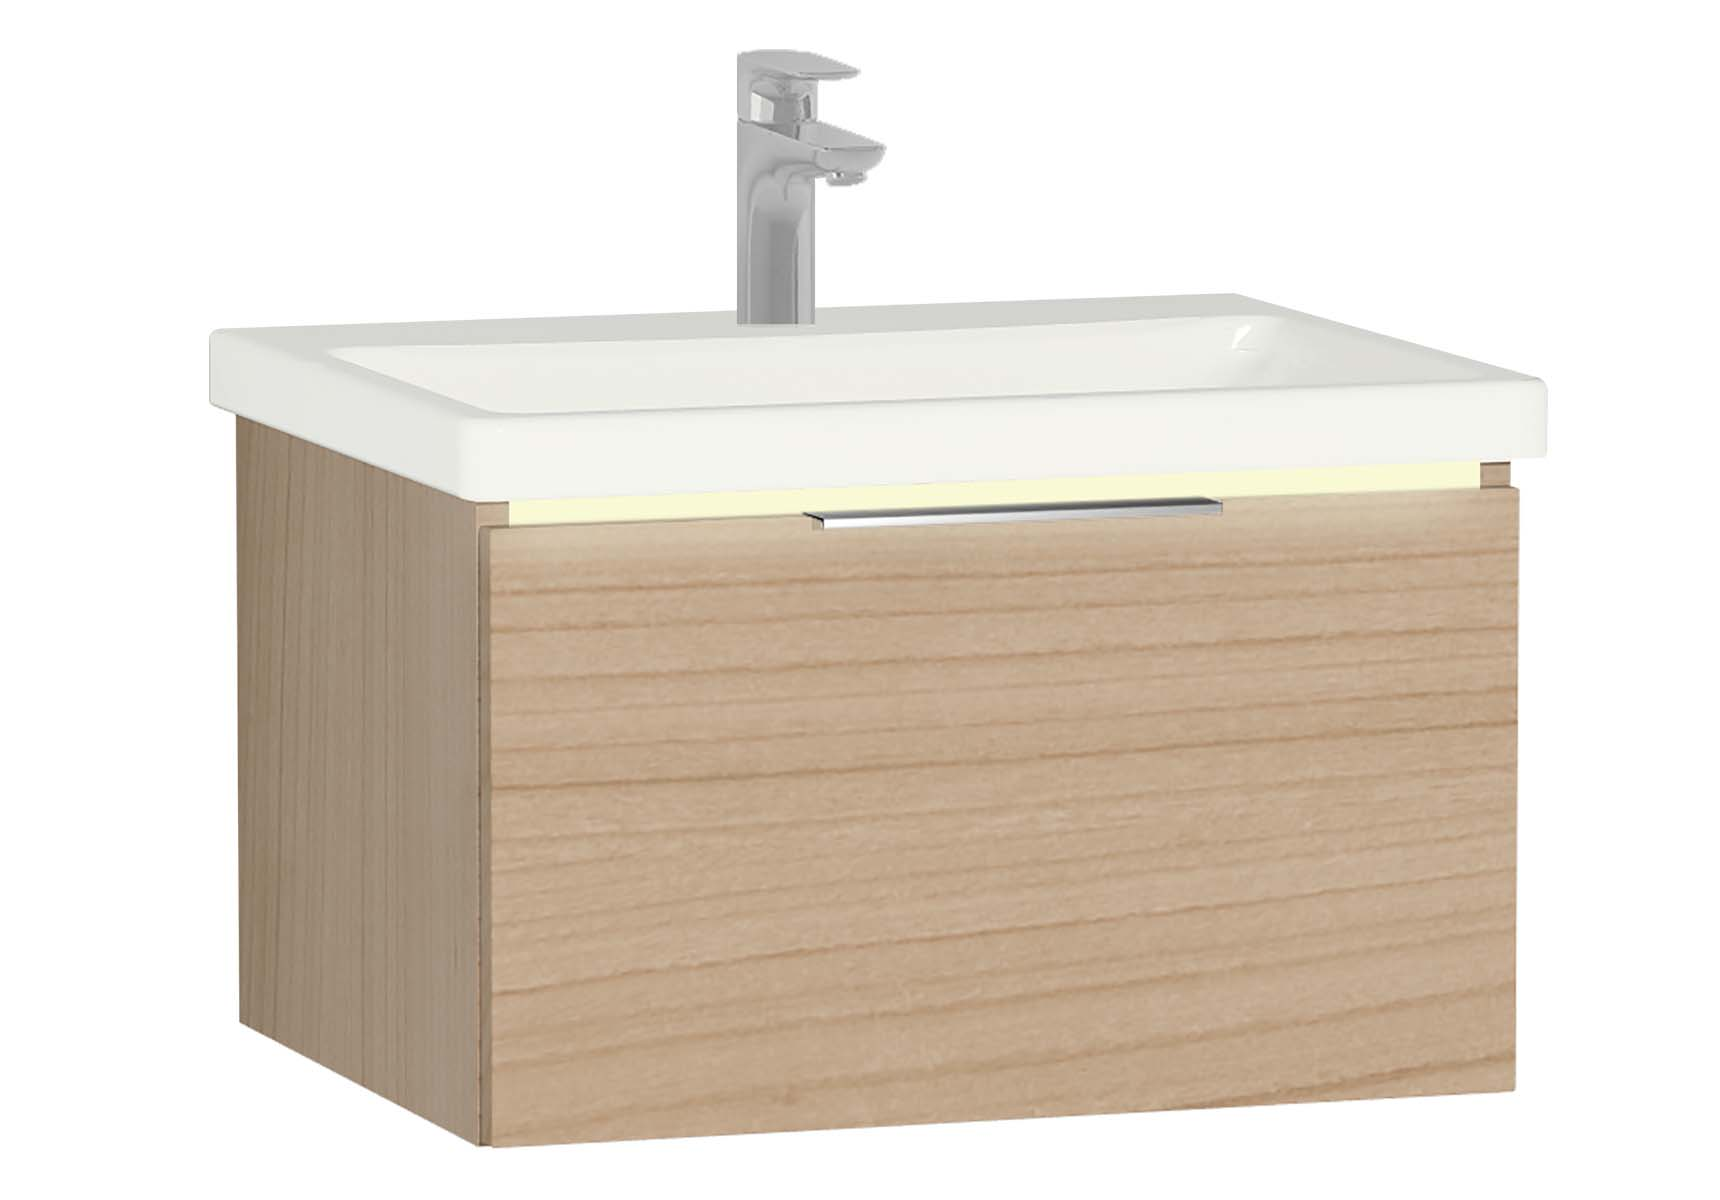 Central Washbasin Unit with 1 drawer, 60 cm, Golden Cherry, Ceramic Washbasin, Led